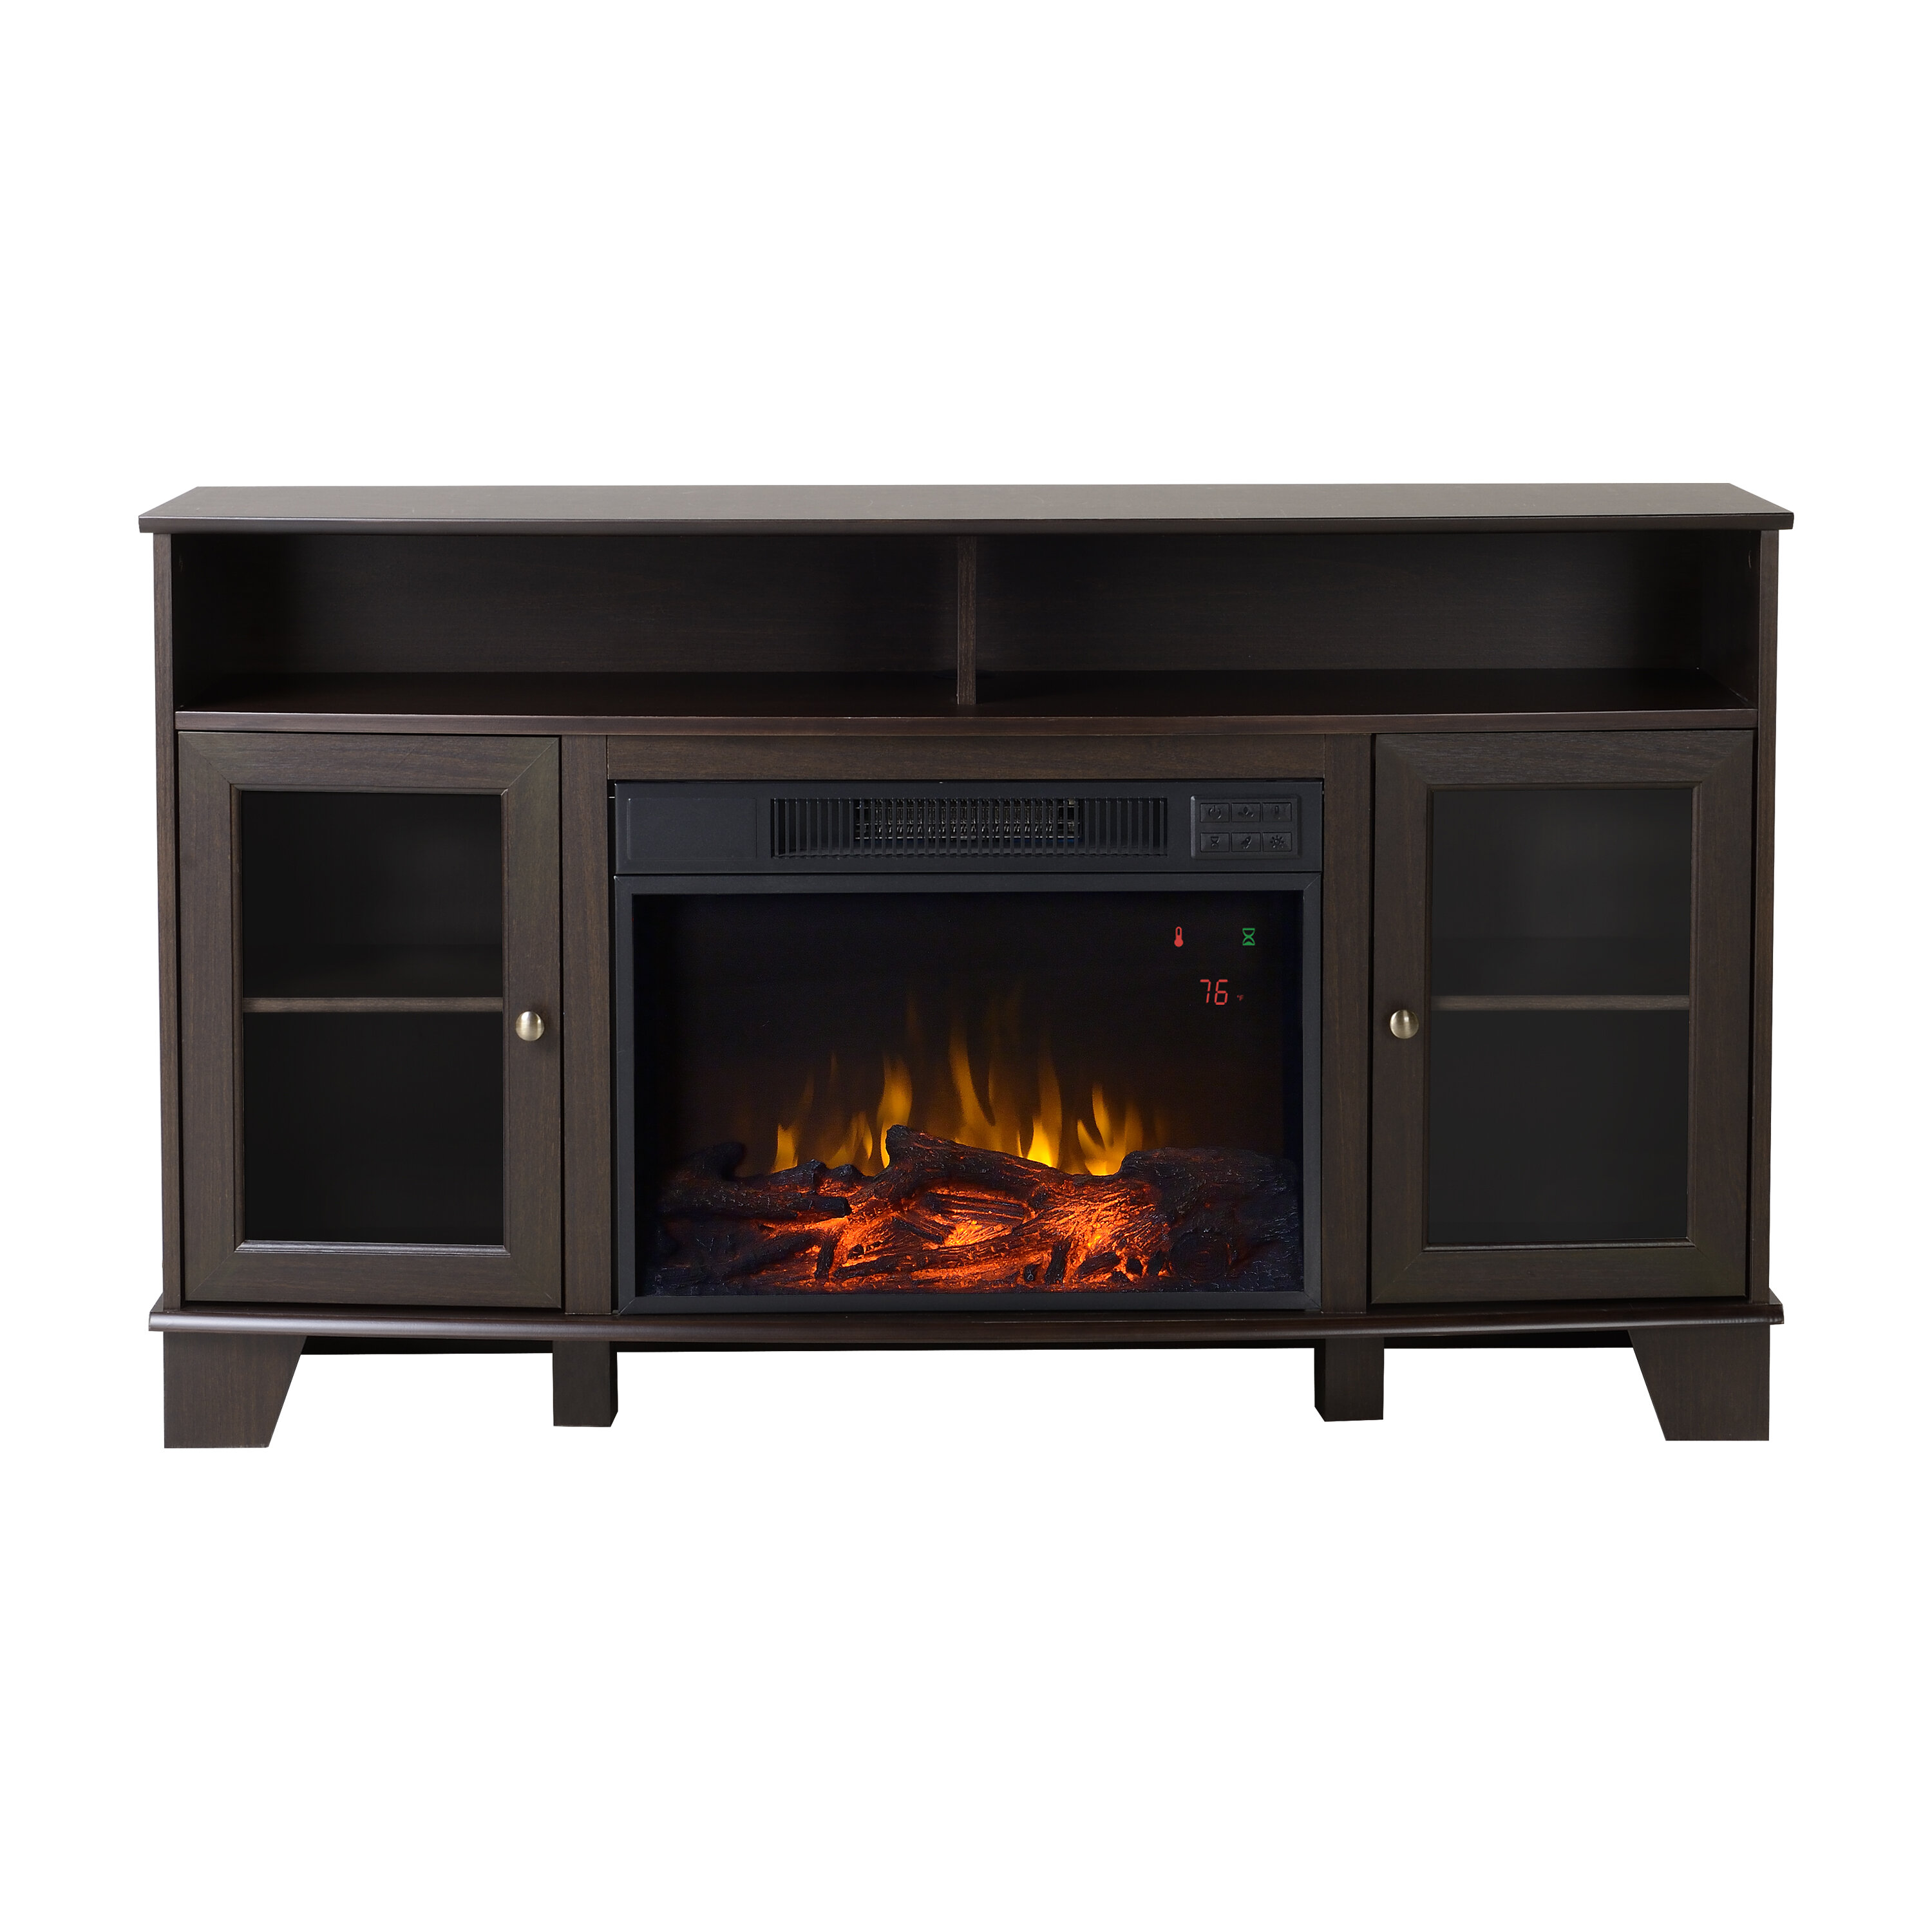 electric infrared pd mdf with mantel espresso w remote control media duraflame thermostat fireplace quartz btu shop in